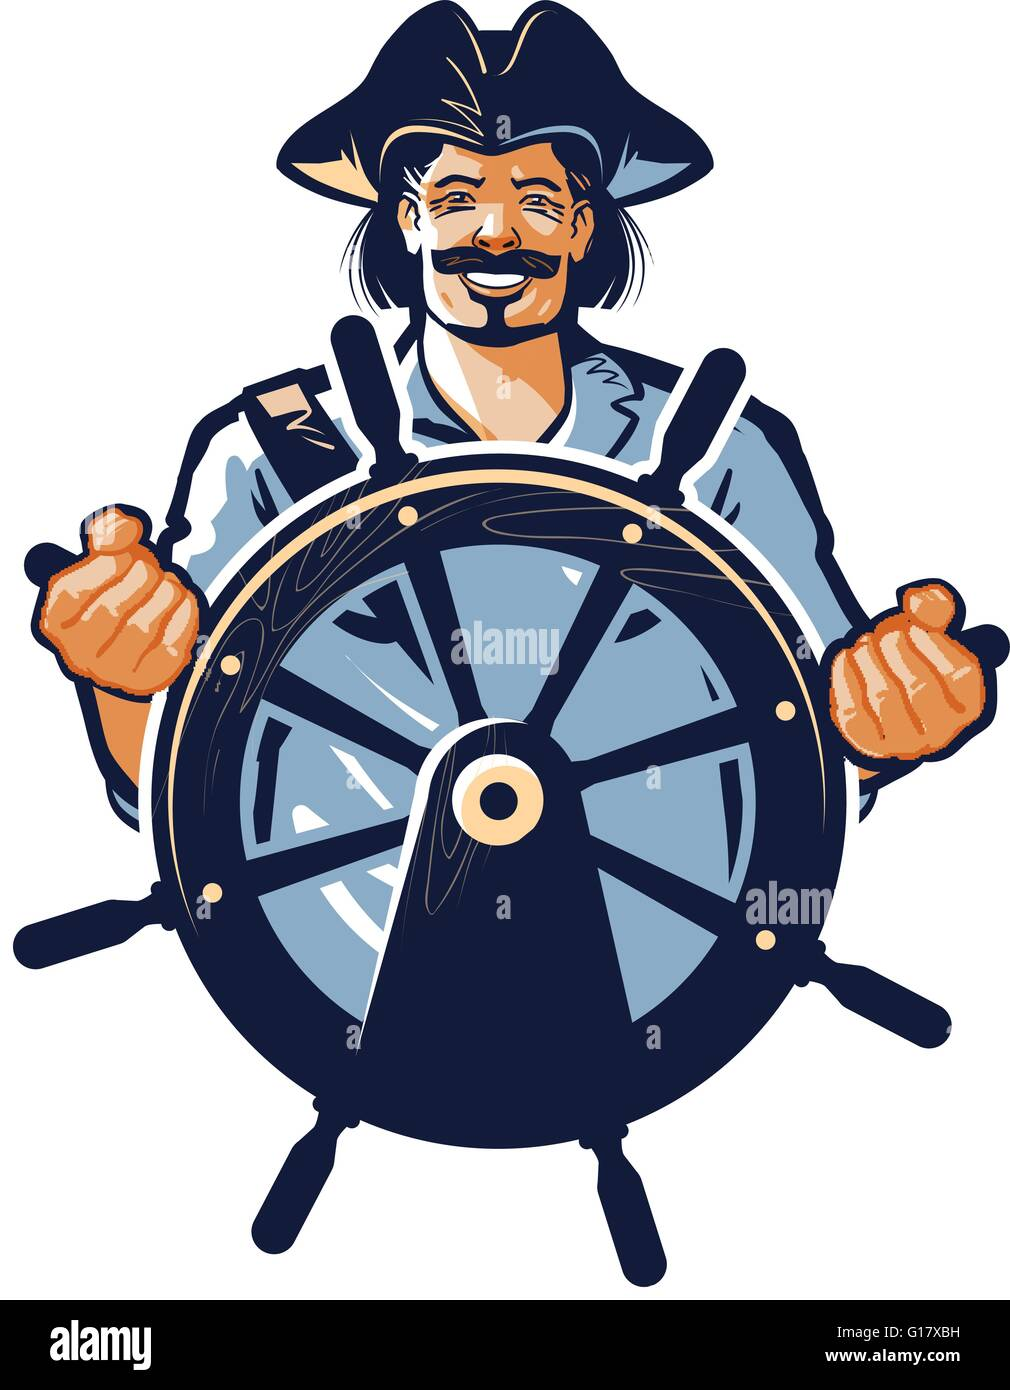 Sailor stock photos illustrations and vector art - Stock Vector Pirate Vector Logo Corsair Or Captain Sailor Seafarer Icon